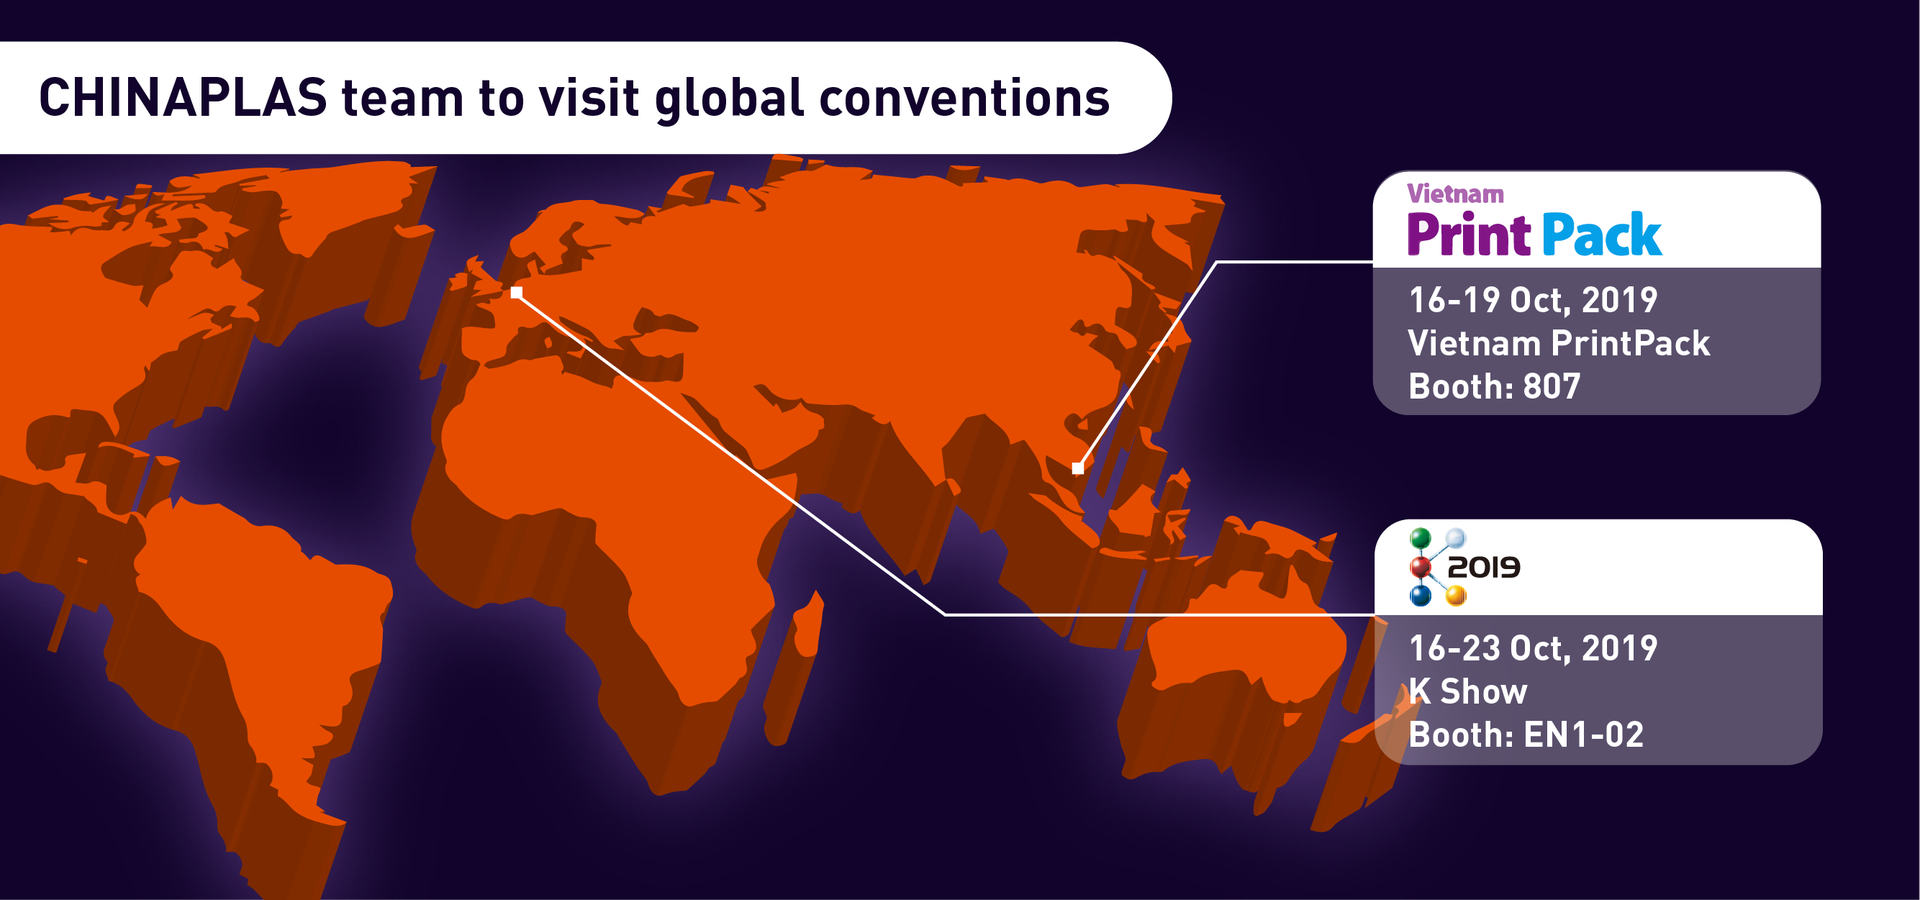 CHINAPLAS team to visit global conventions